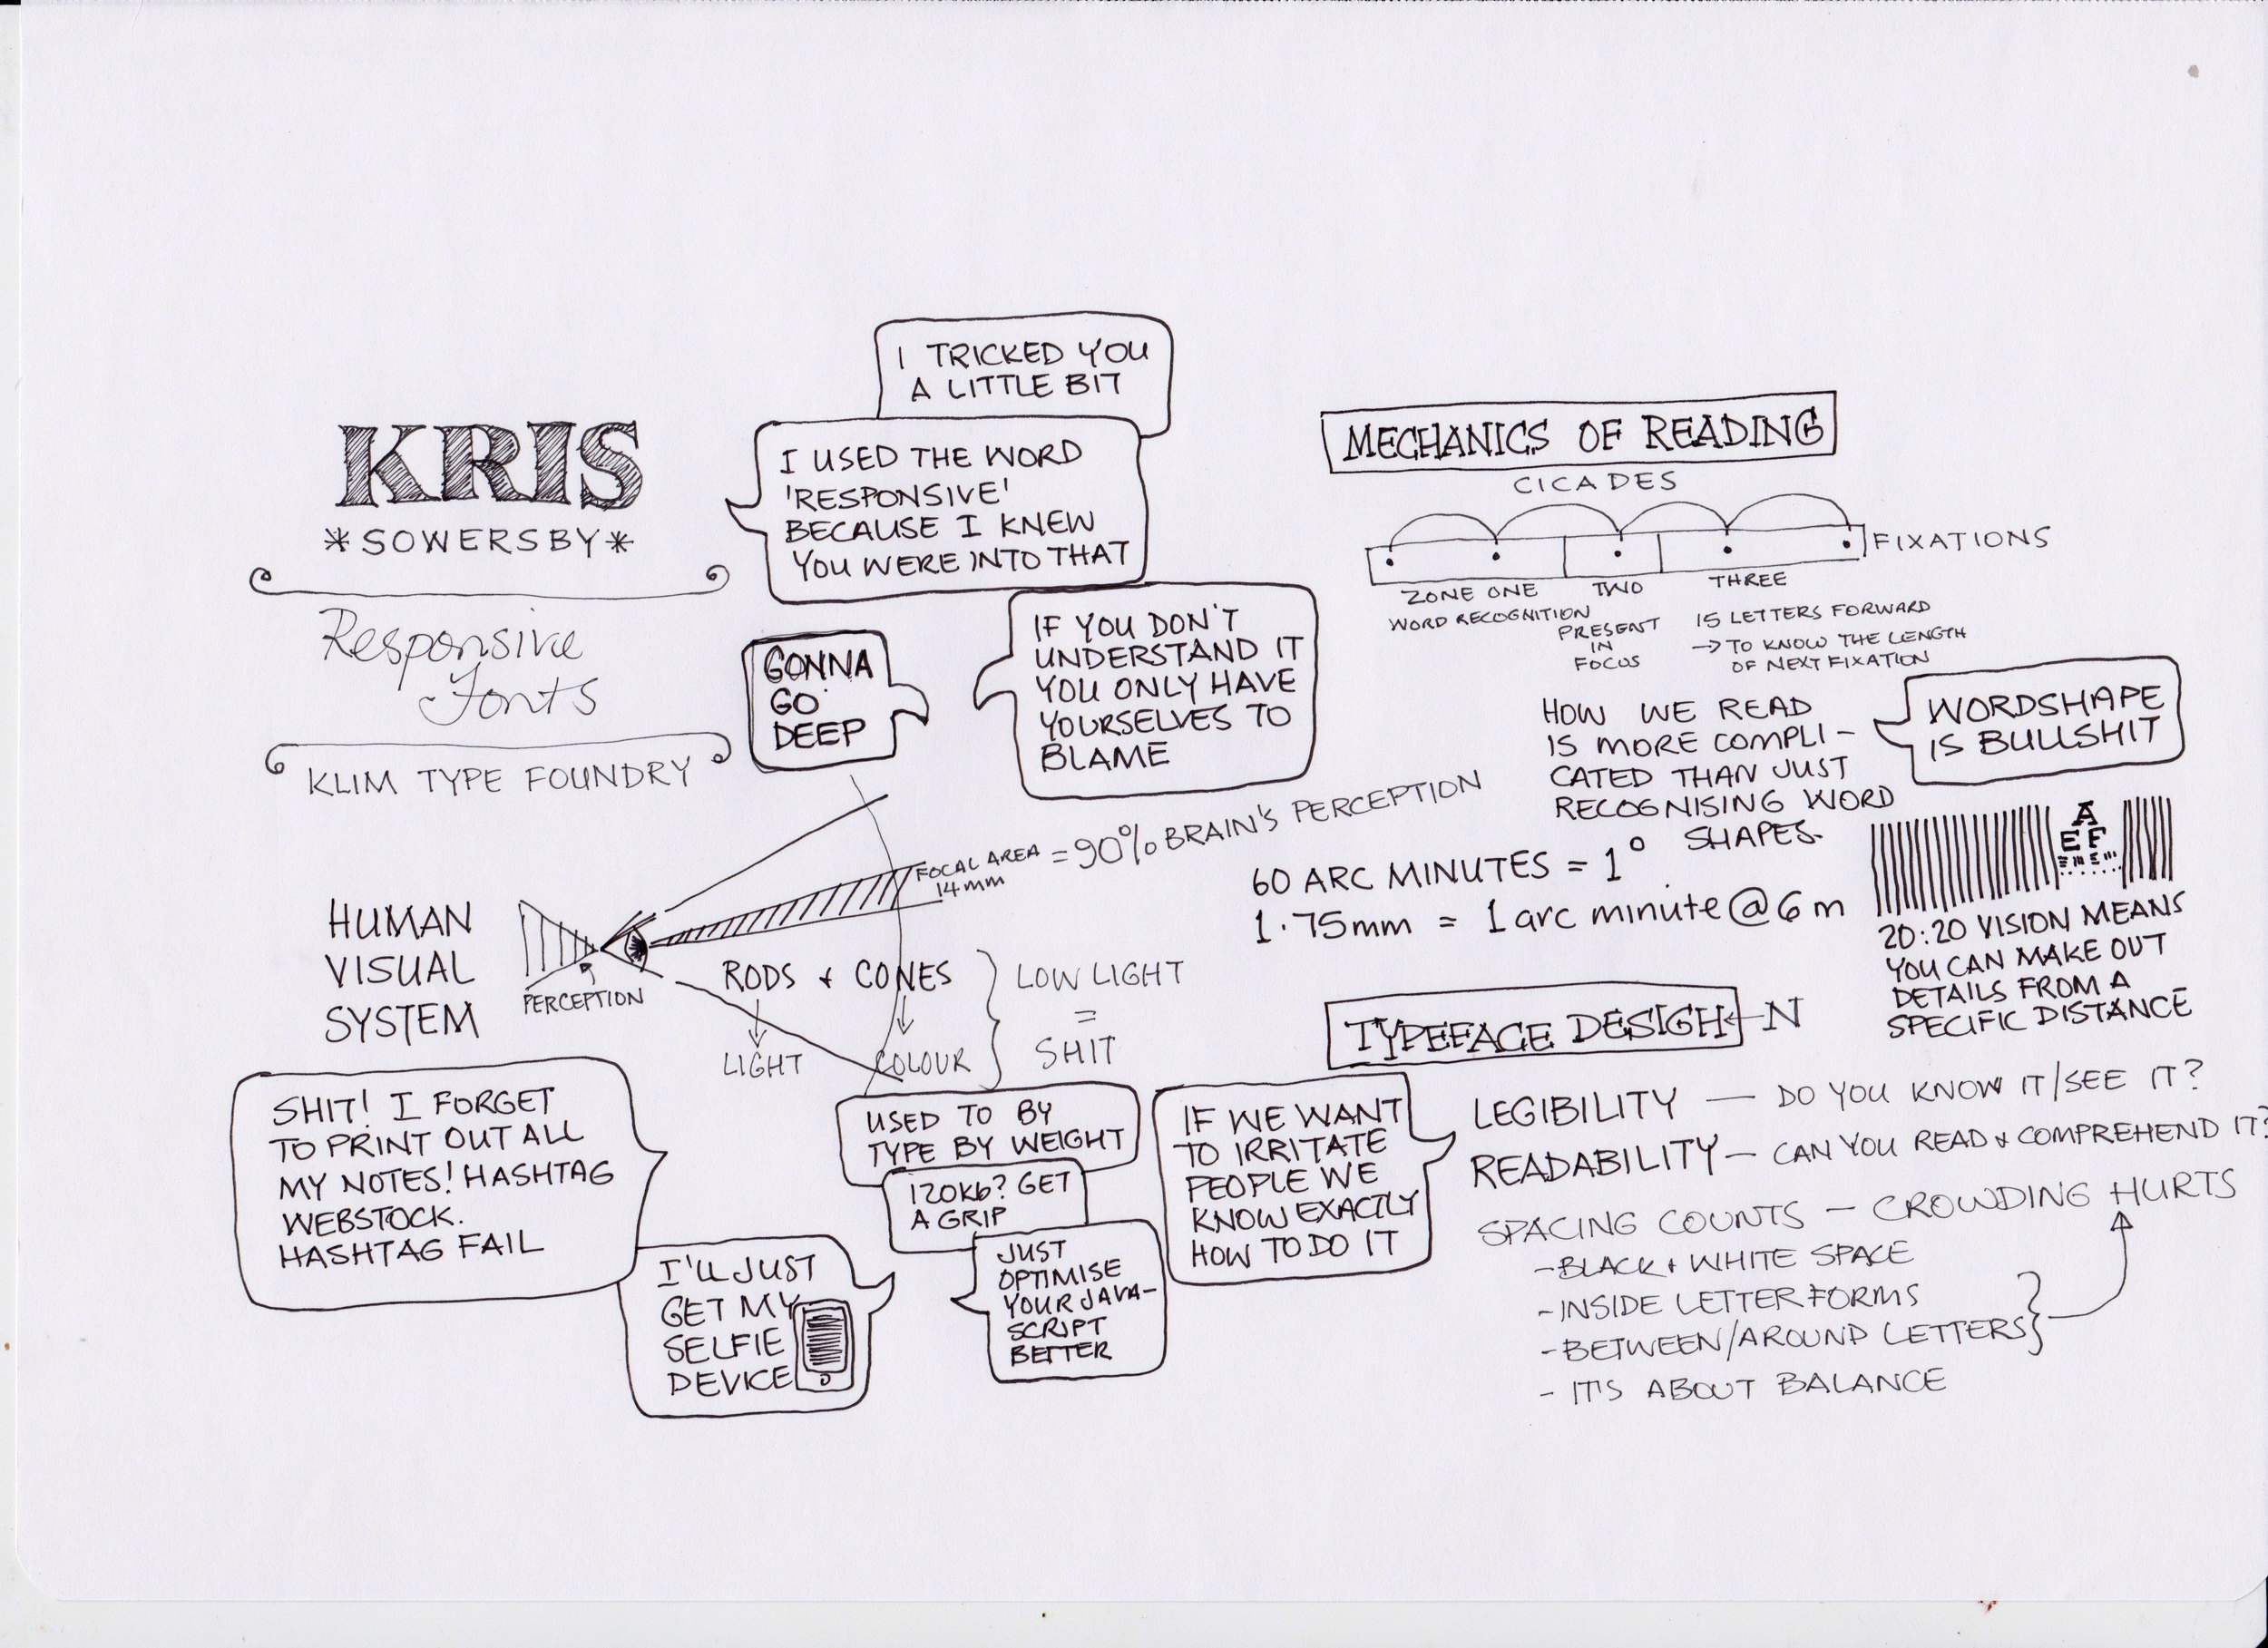 Sketchnotes from Kris Sowersby's talk at Webstock 2015 - click to enlarge